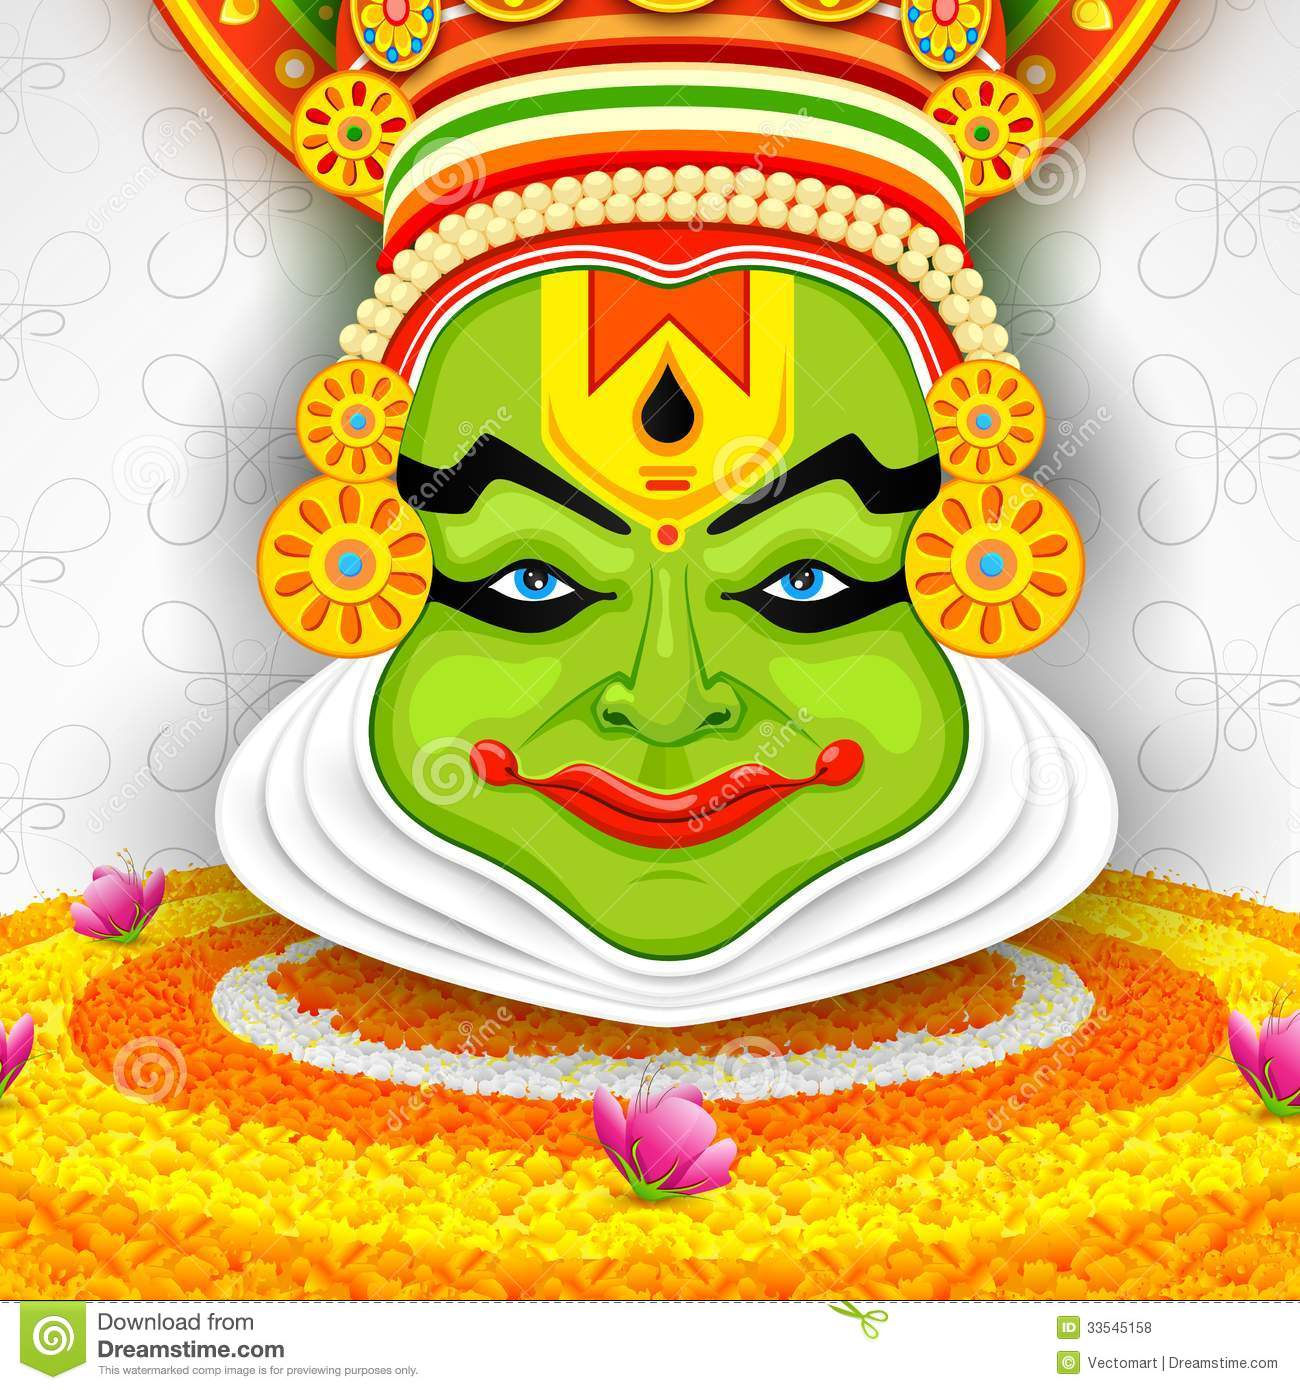 kathakali cartoons pictures illustrations - photo #49